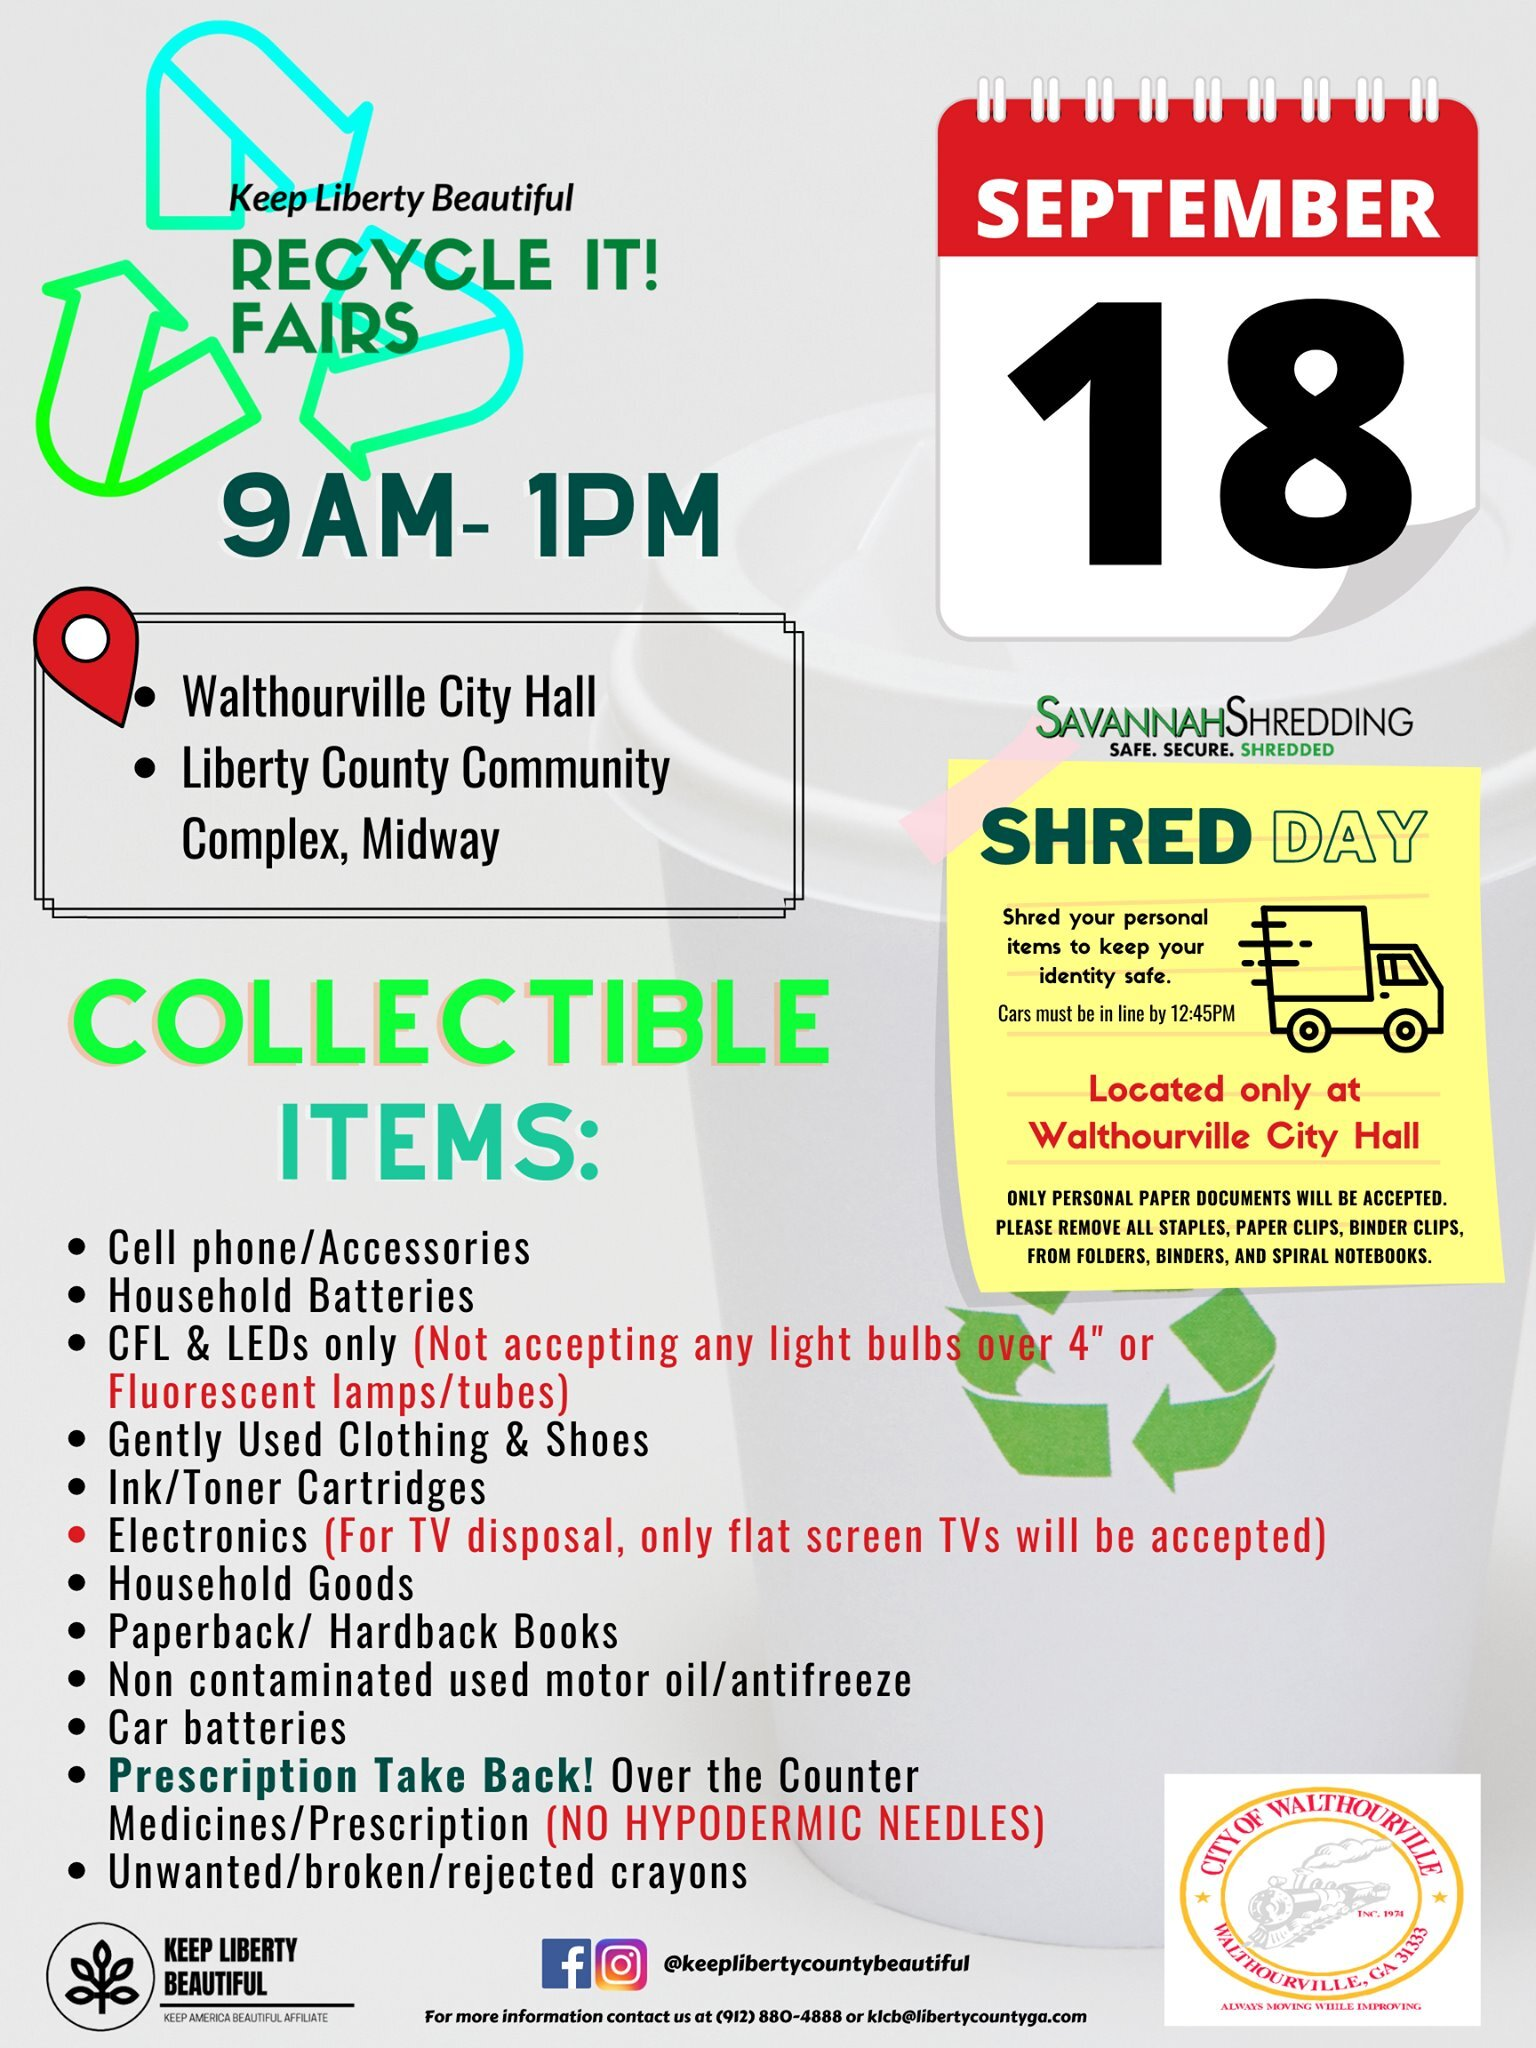 Recycle It! Fair flyer for Keep Liberty Beautiful